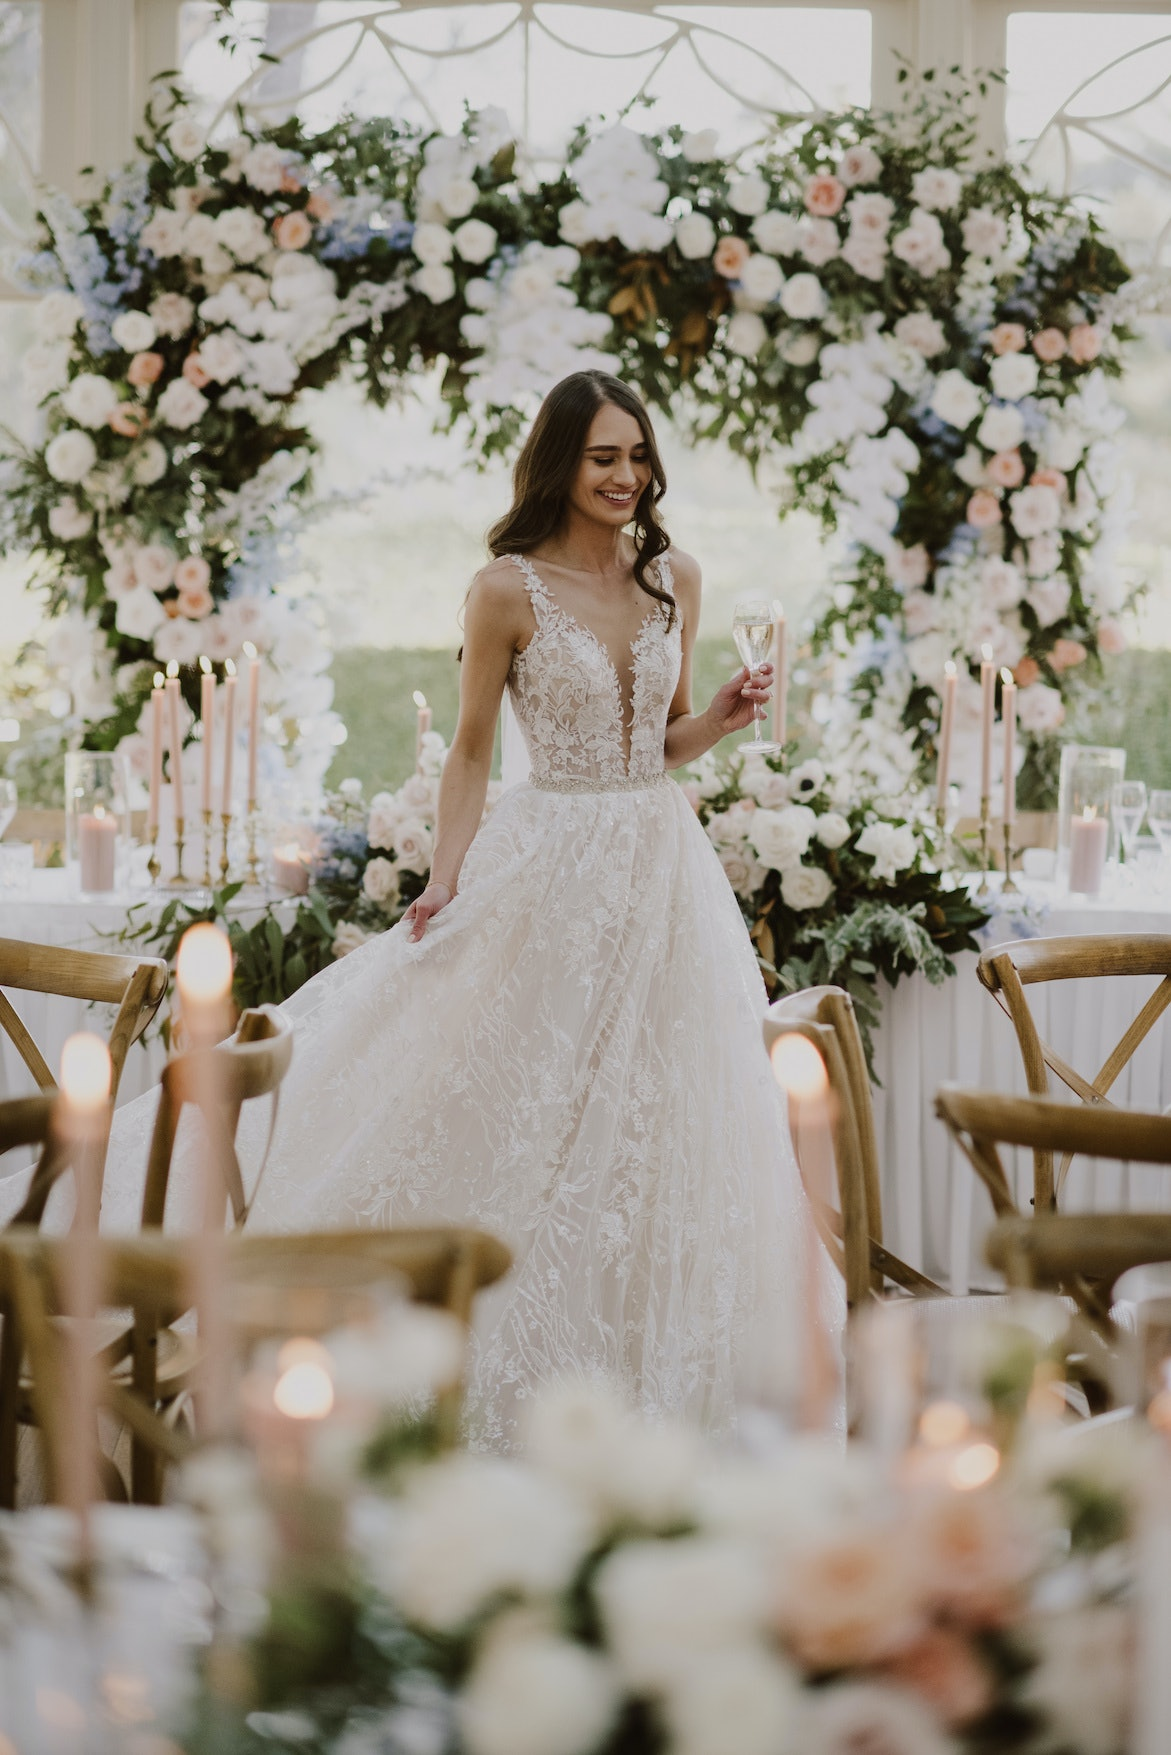 Bride holding a glass of champagne standing in front of a floral arbour